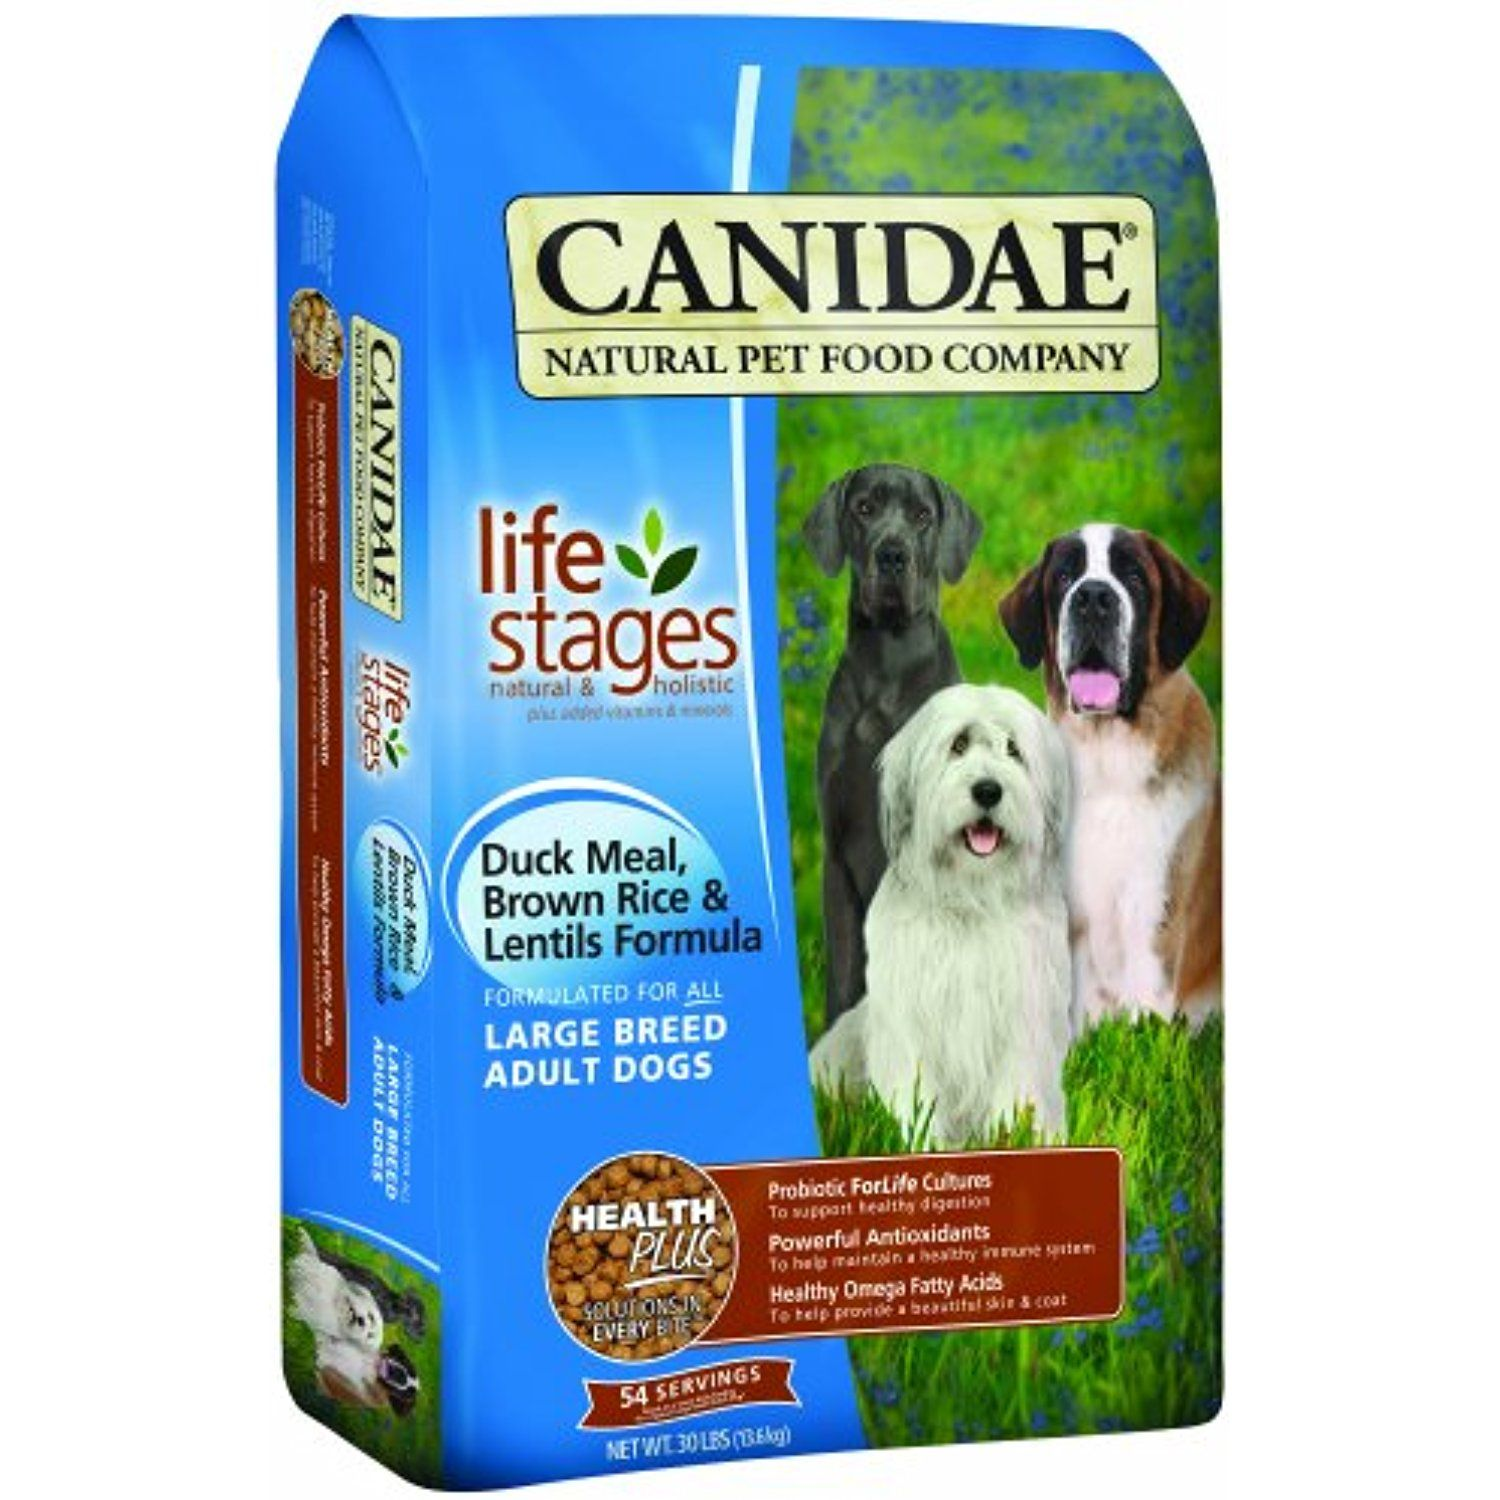 Canidae All Life Stages Large Breed Adult Dog Food Made With Duck